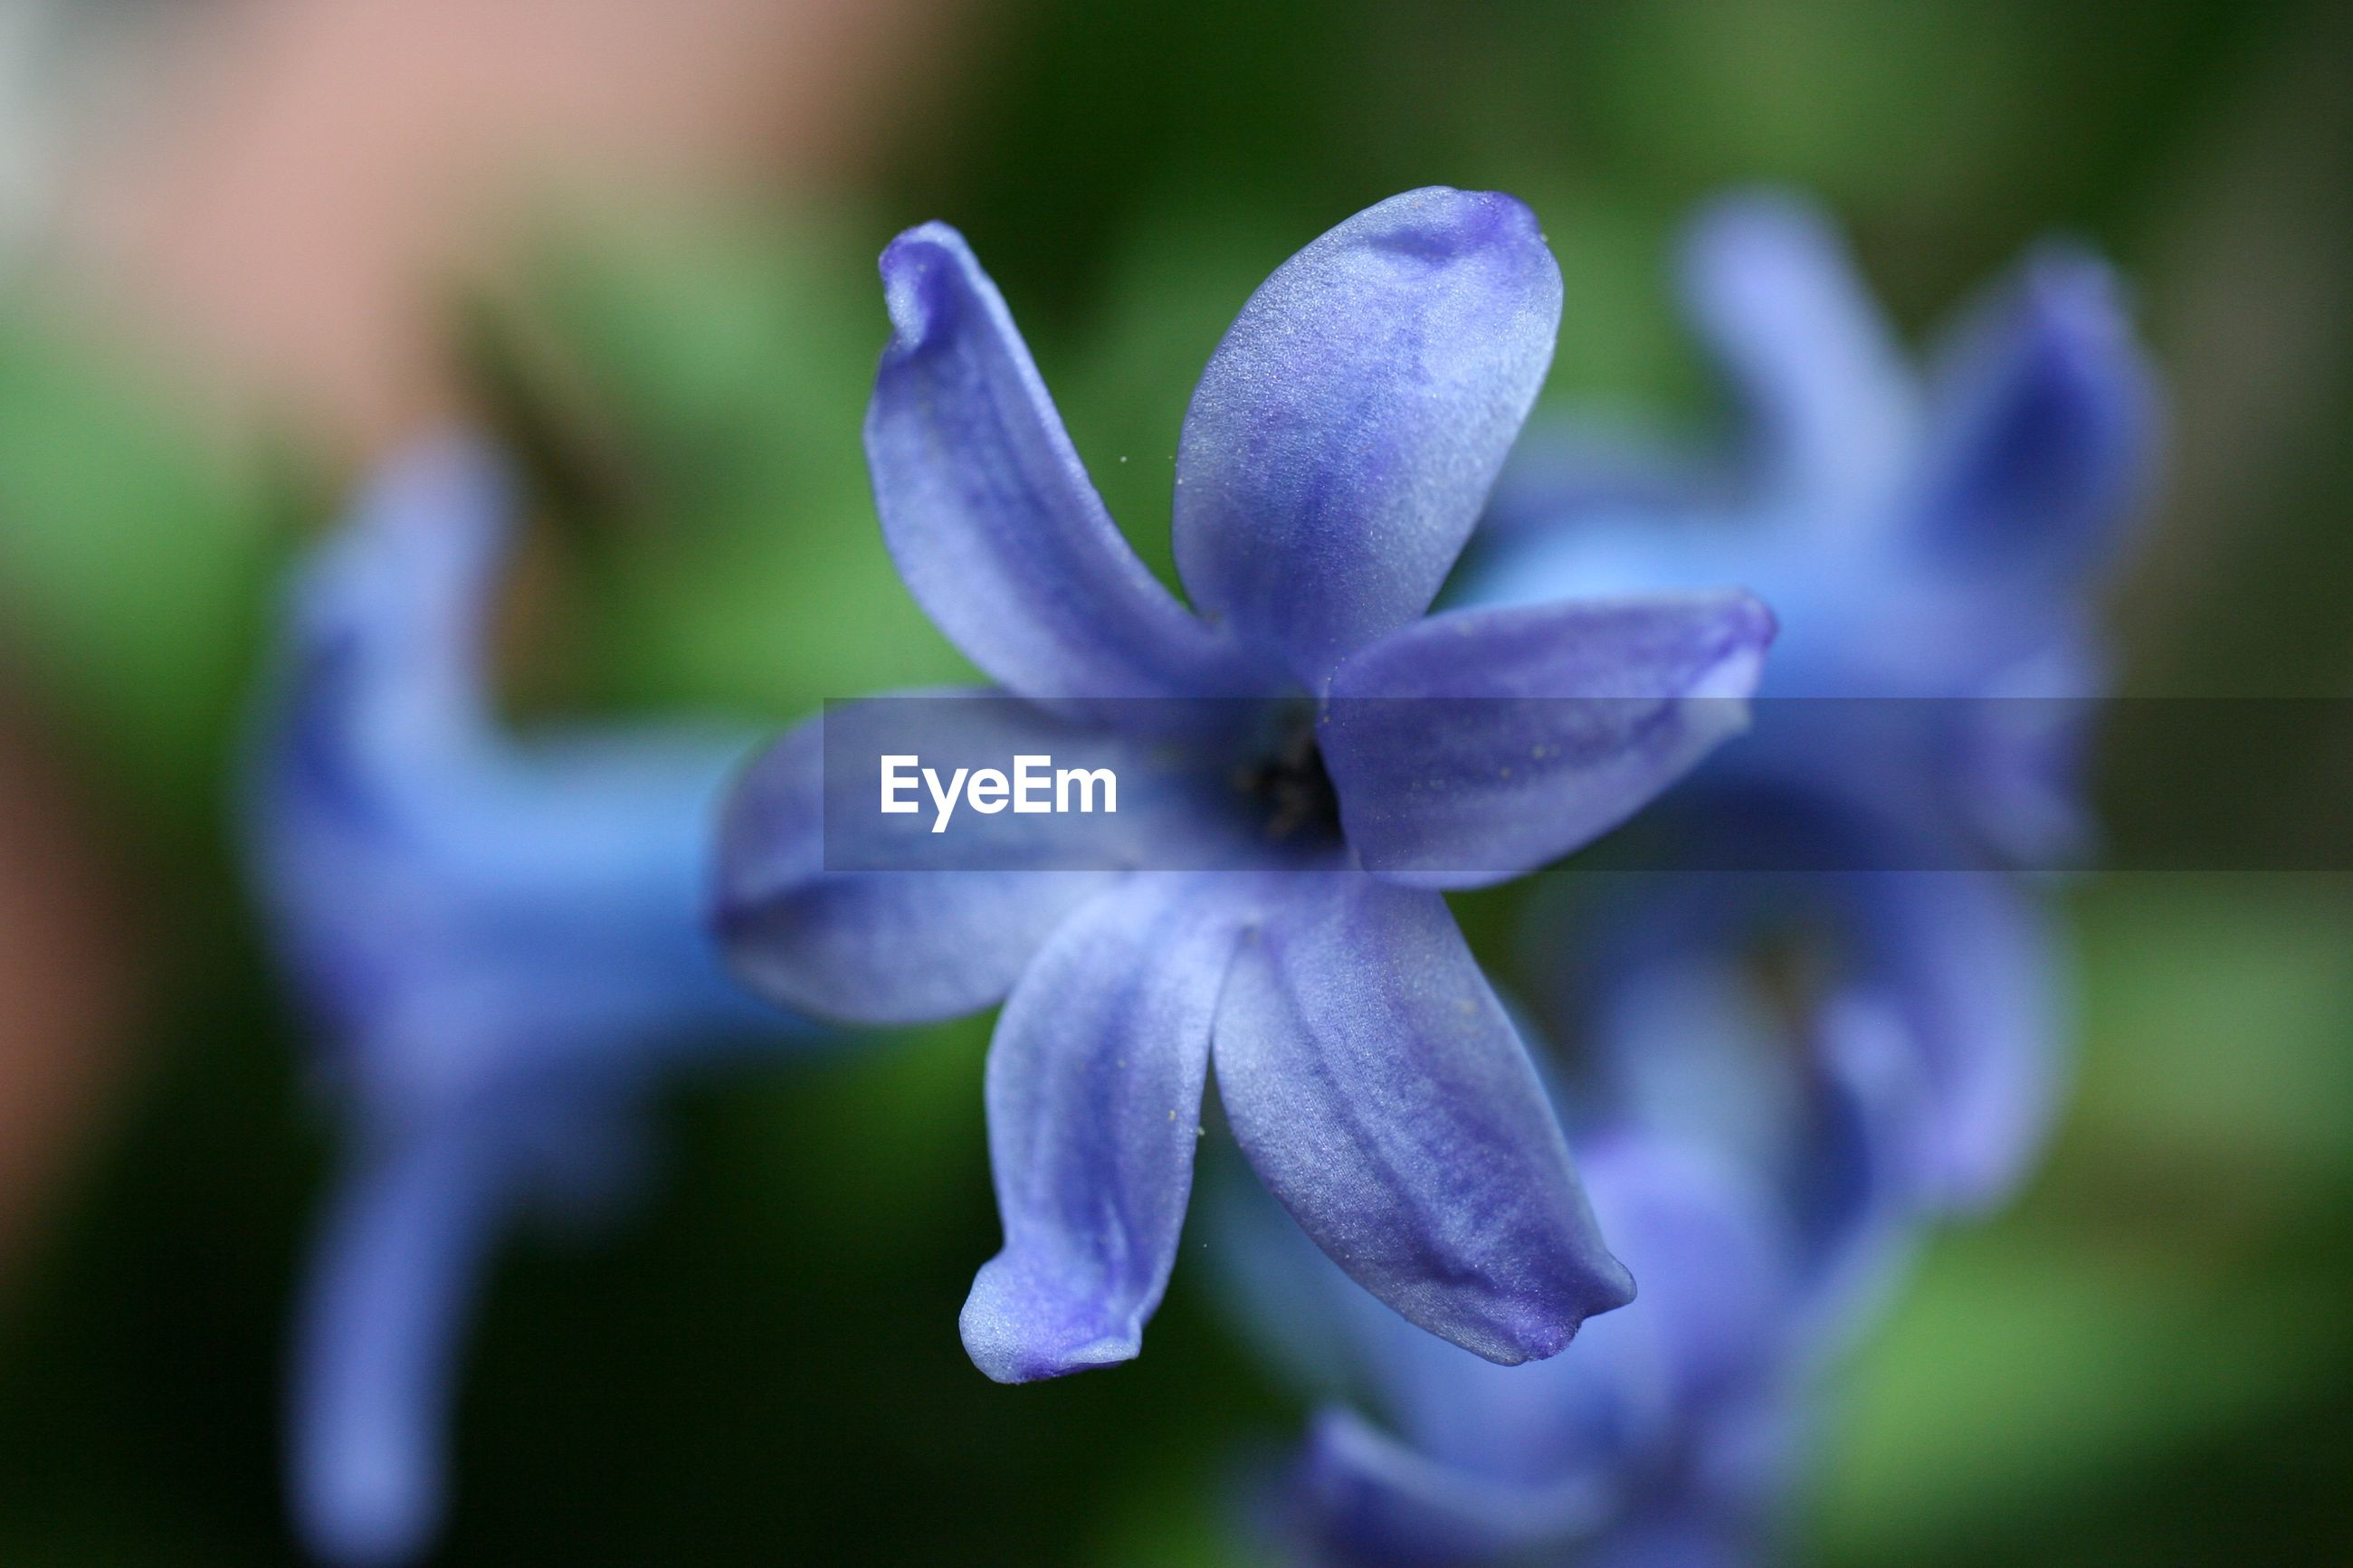 CLOSE-UP OF PURPLE FLOWER AGAINST BLURRED BACKGROUND